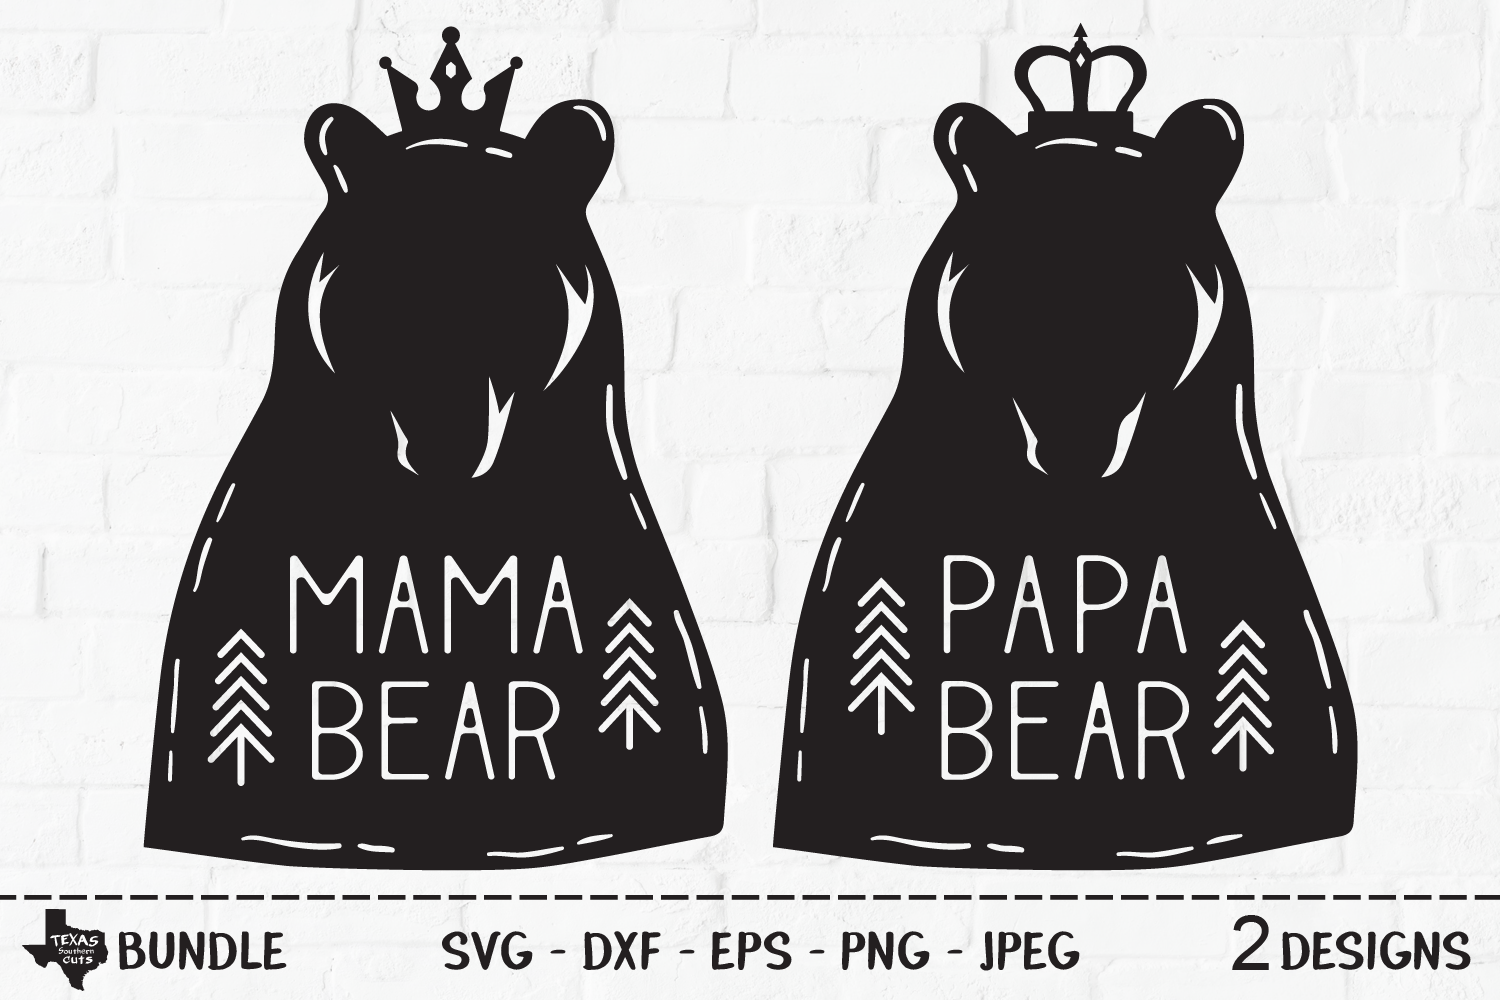 Download Free Bear Bundle Woodland Bear Designs Graphic By Texassoutherncuts for Cricut Explore, Silhouette and other cutting machines.